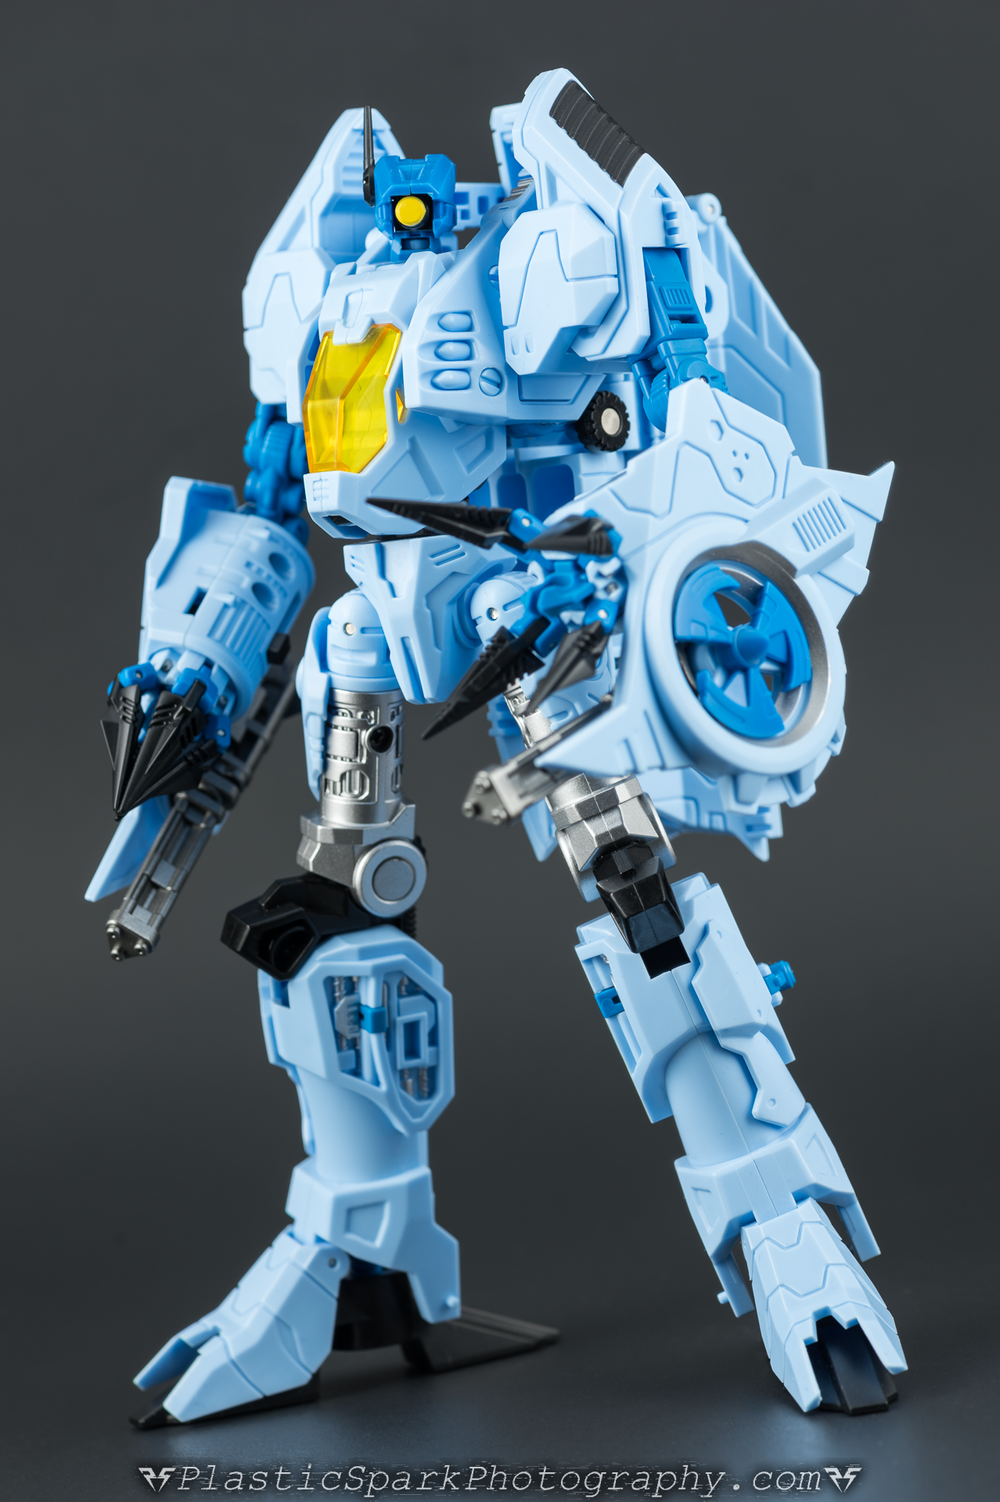 Mastermind-Creations-R-24-Turben-(31-of-34).png